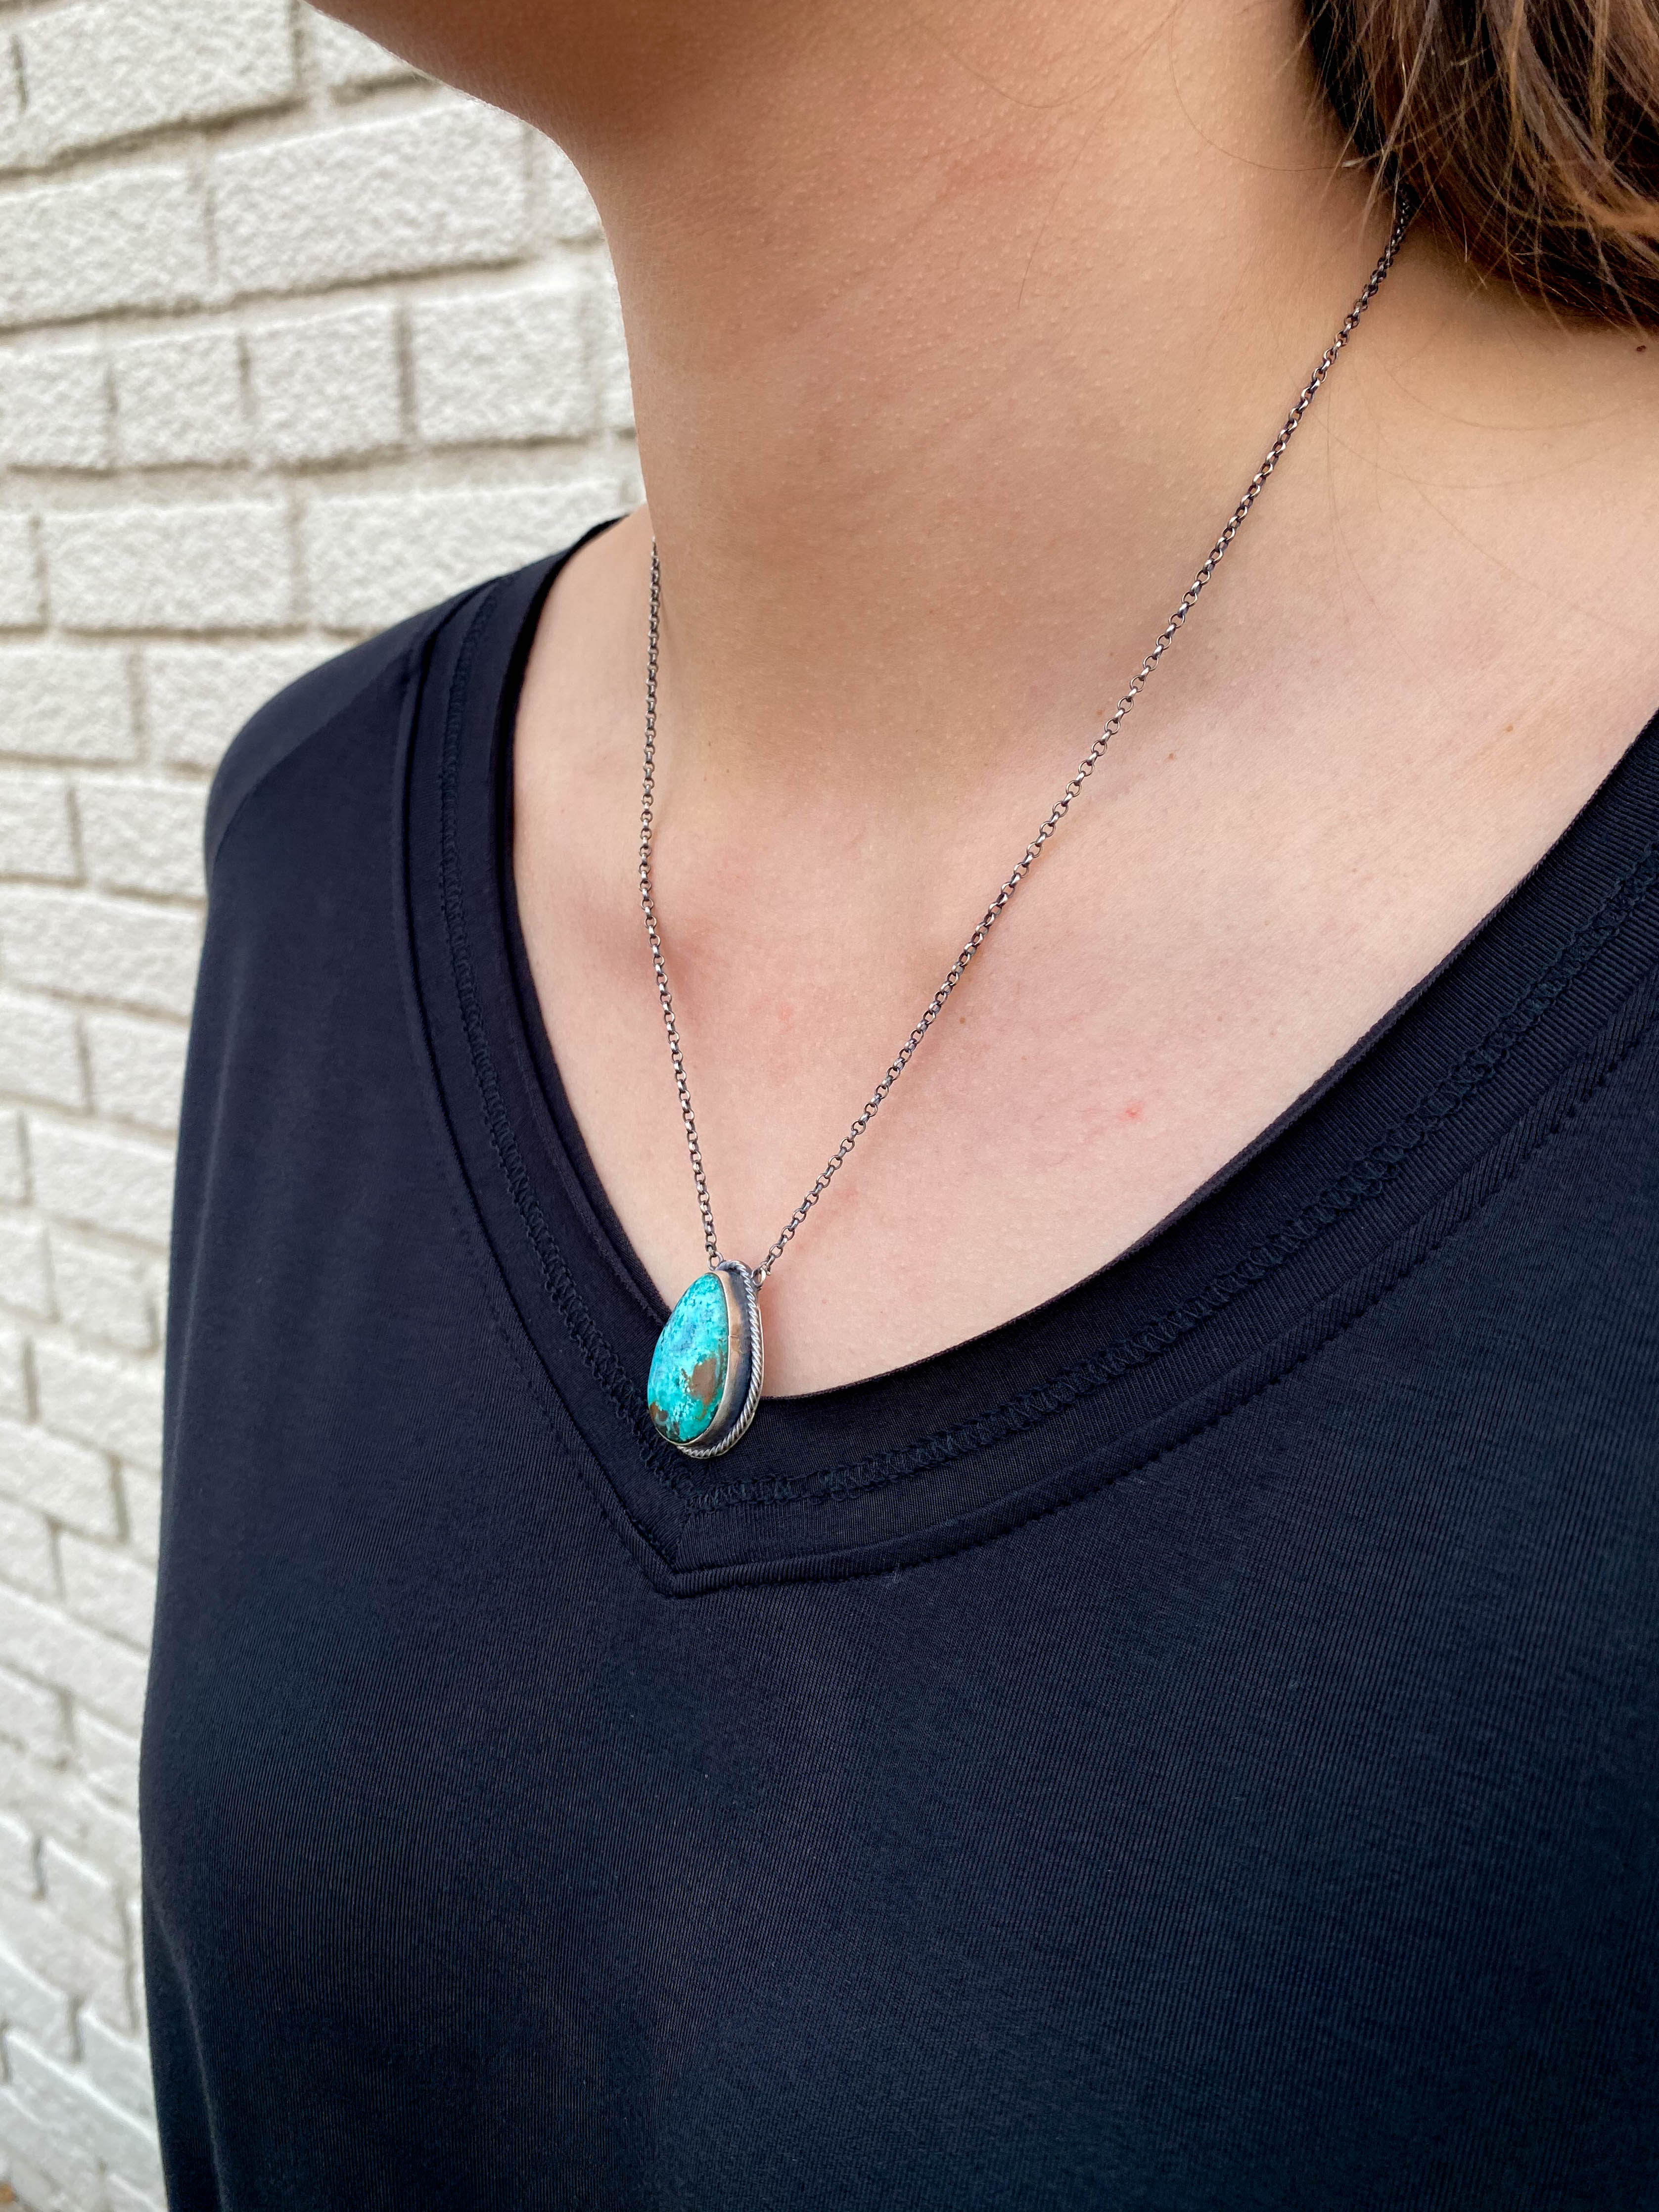 Dainty Chain Necklace , Teardrop Rope Turquoise #1